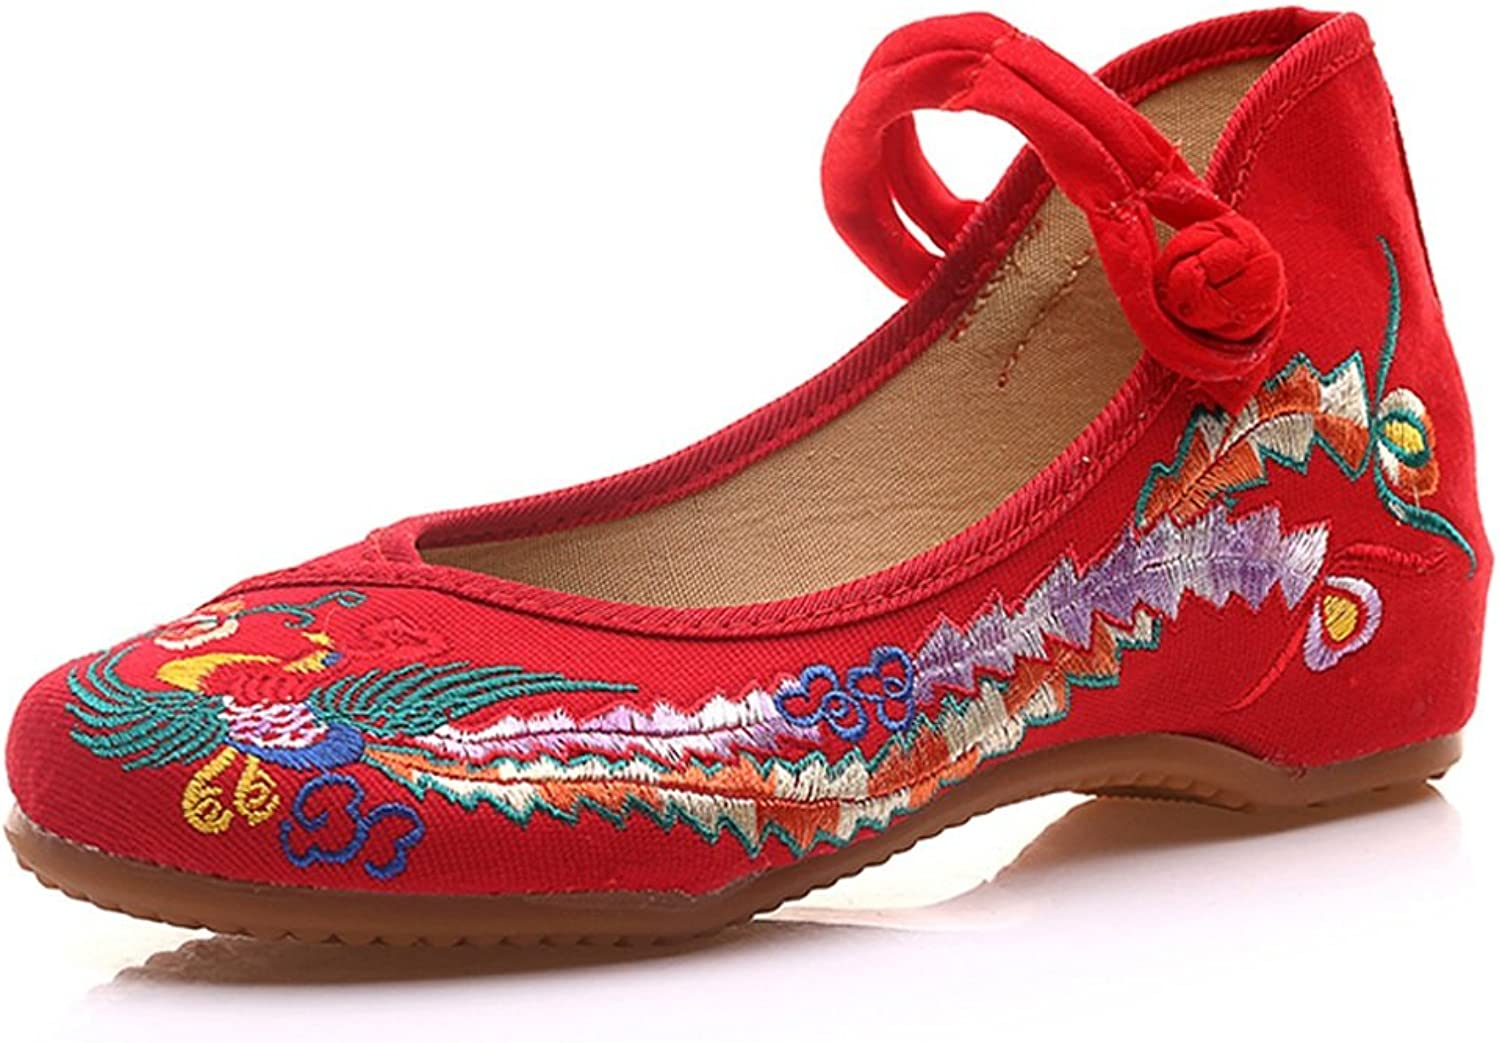 Red Phoenix Embroidered shoes Flat Ballet Cotton Loafer Women Casual Loafers ( color   Red , Size   35 )